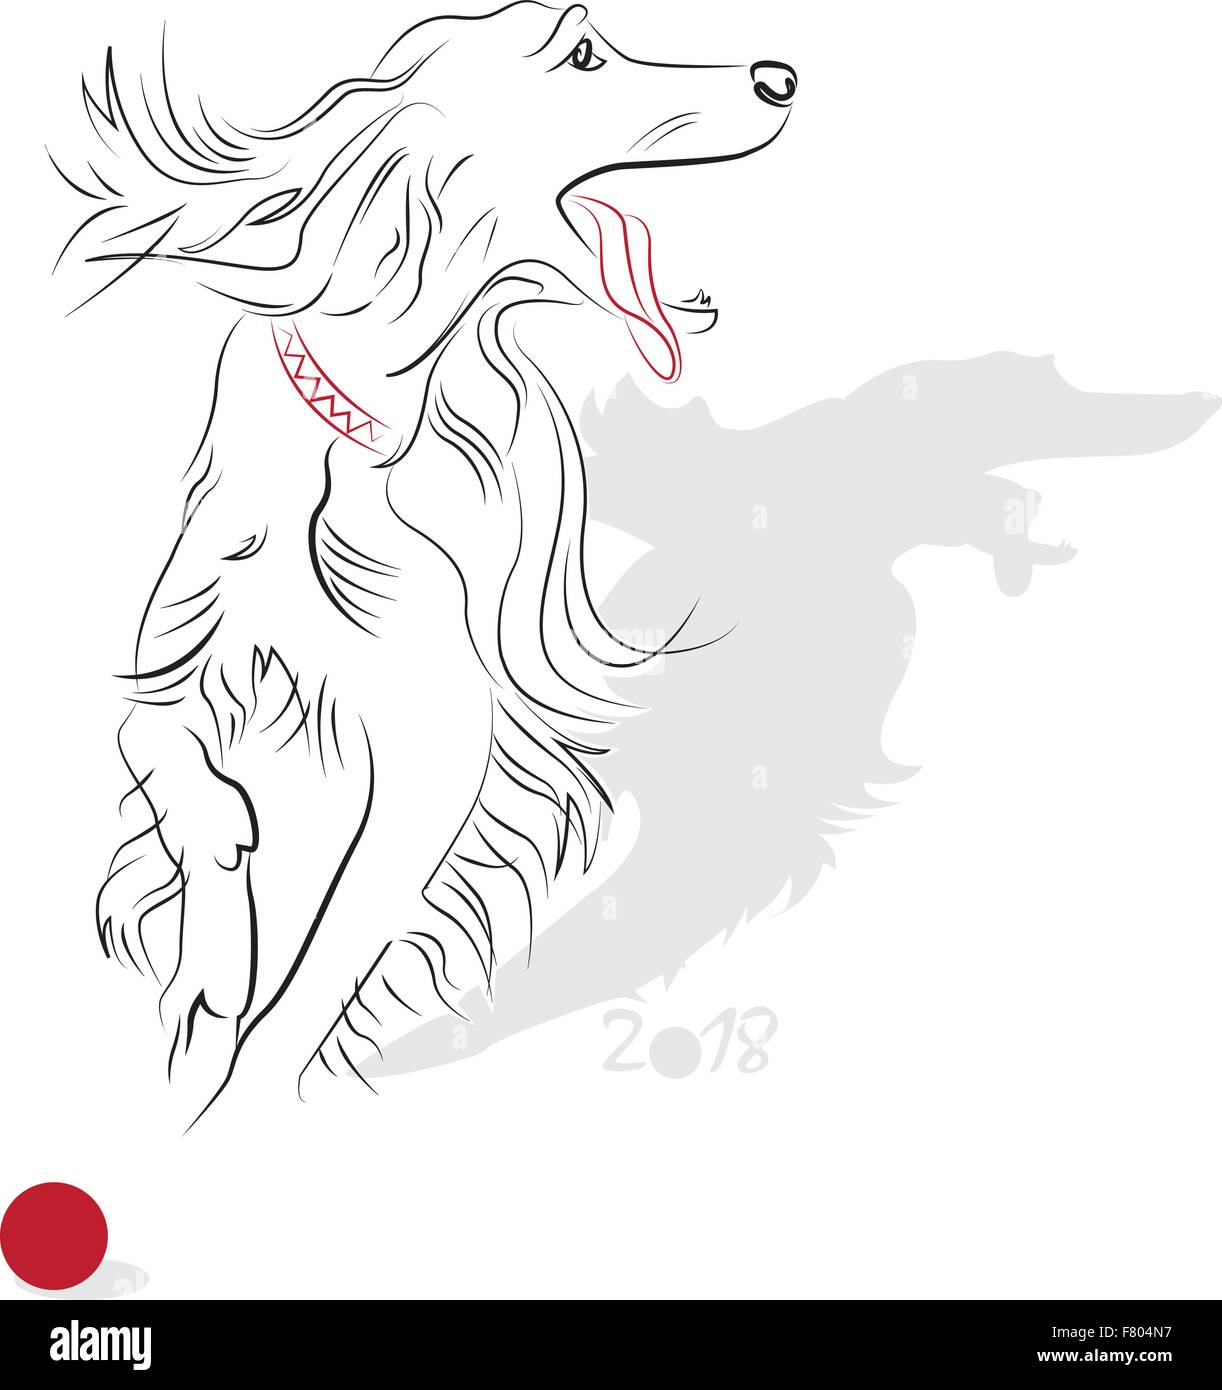 Chinese new year 2018 dog year greeting or invitation card for chinese new year 2018 dog year greeting or invitation card for the holiday vector illustration kristyandbryce Images